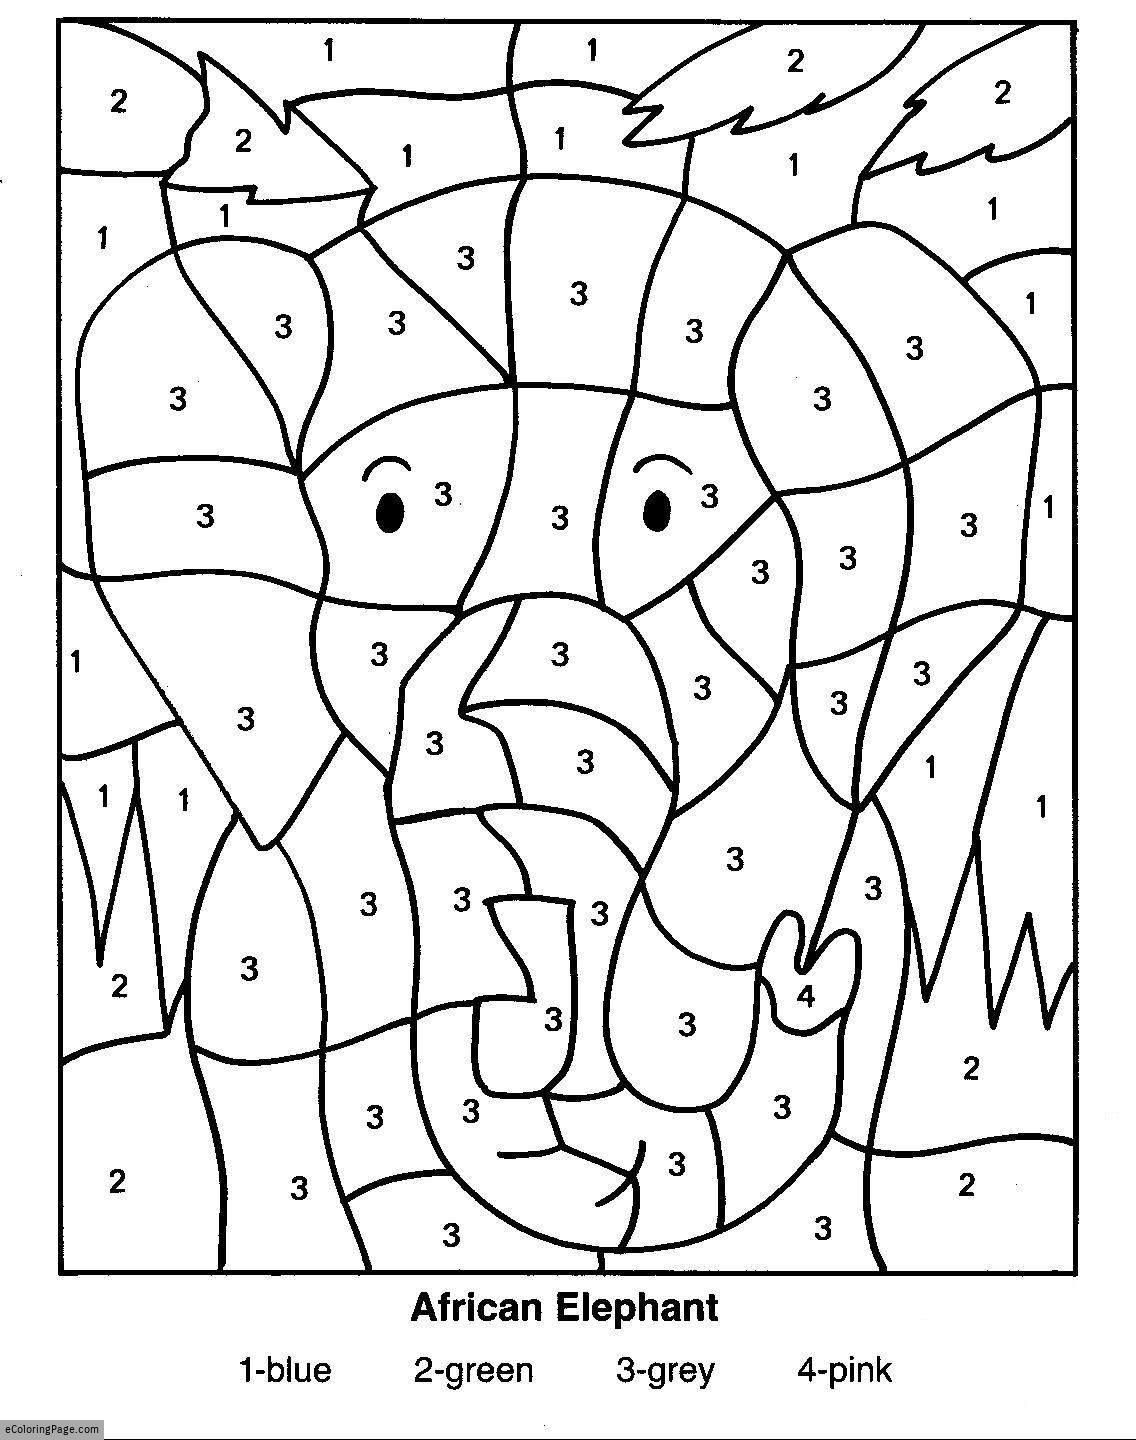 Color-By-Numbers-Elephant-Coloring-Pages-For-Kids-Printable | Printable Color By Number Math Worksheets